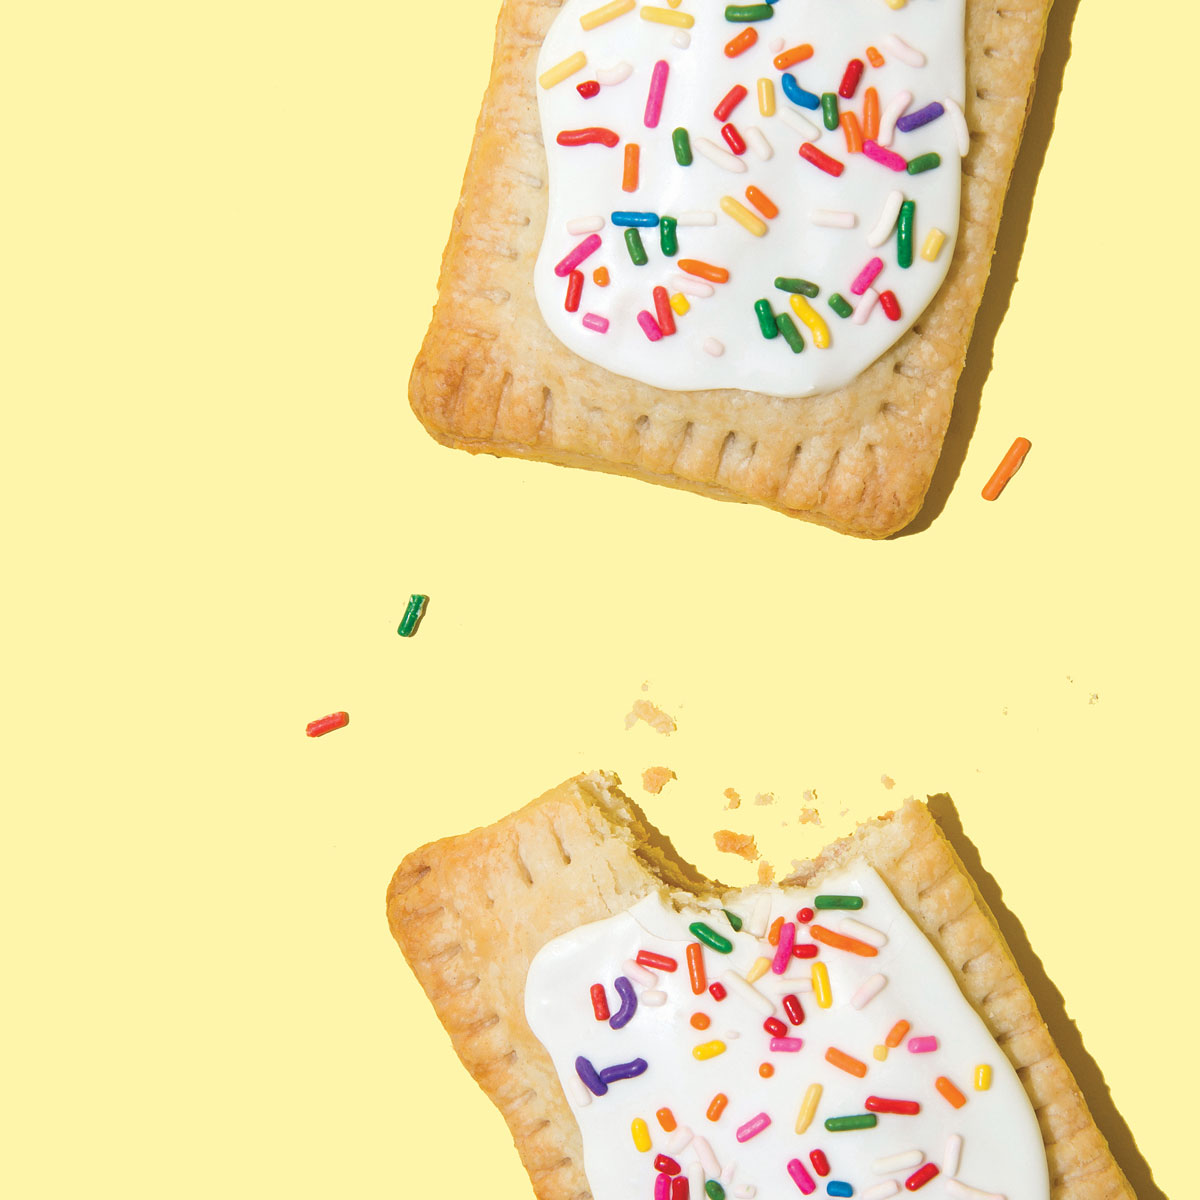 Ashley Sue's Baked Goods' Strawberry Pop Tarts